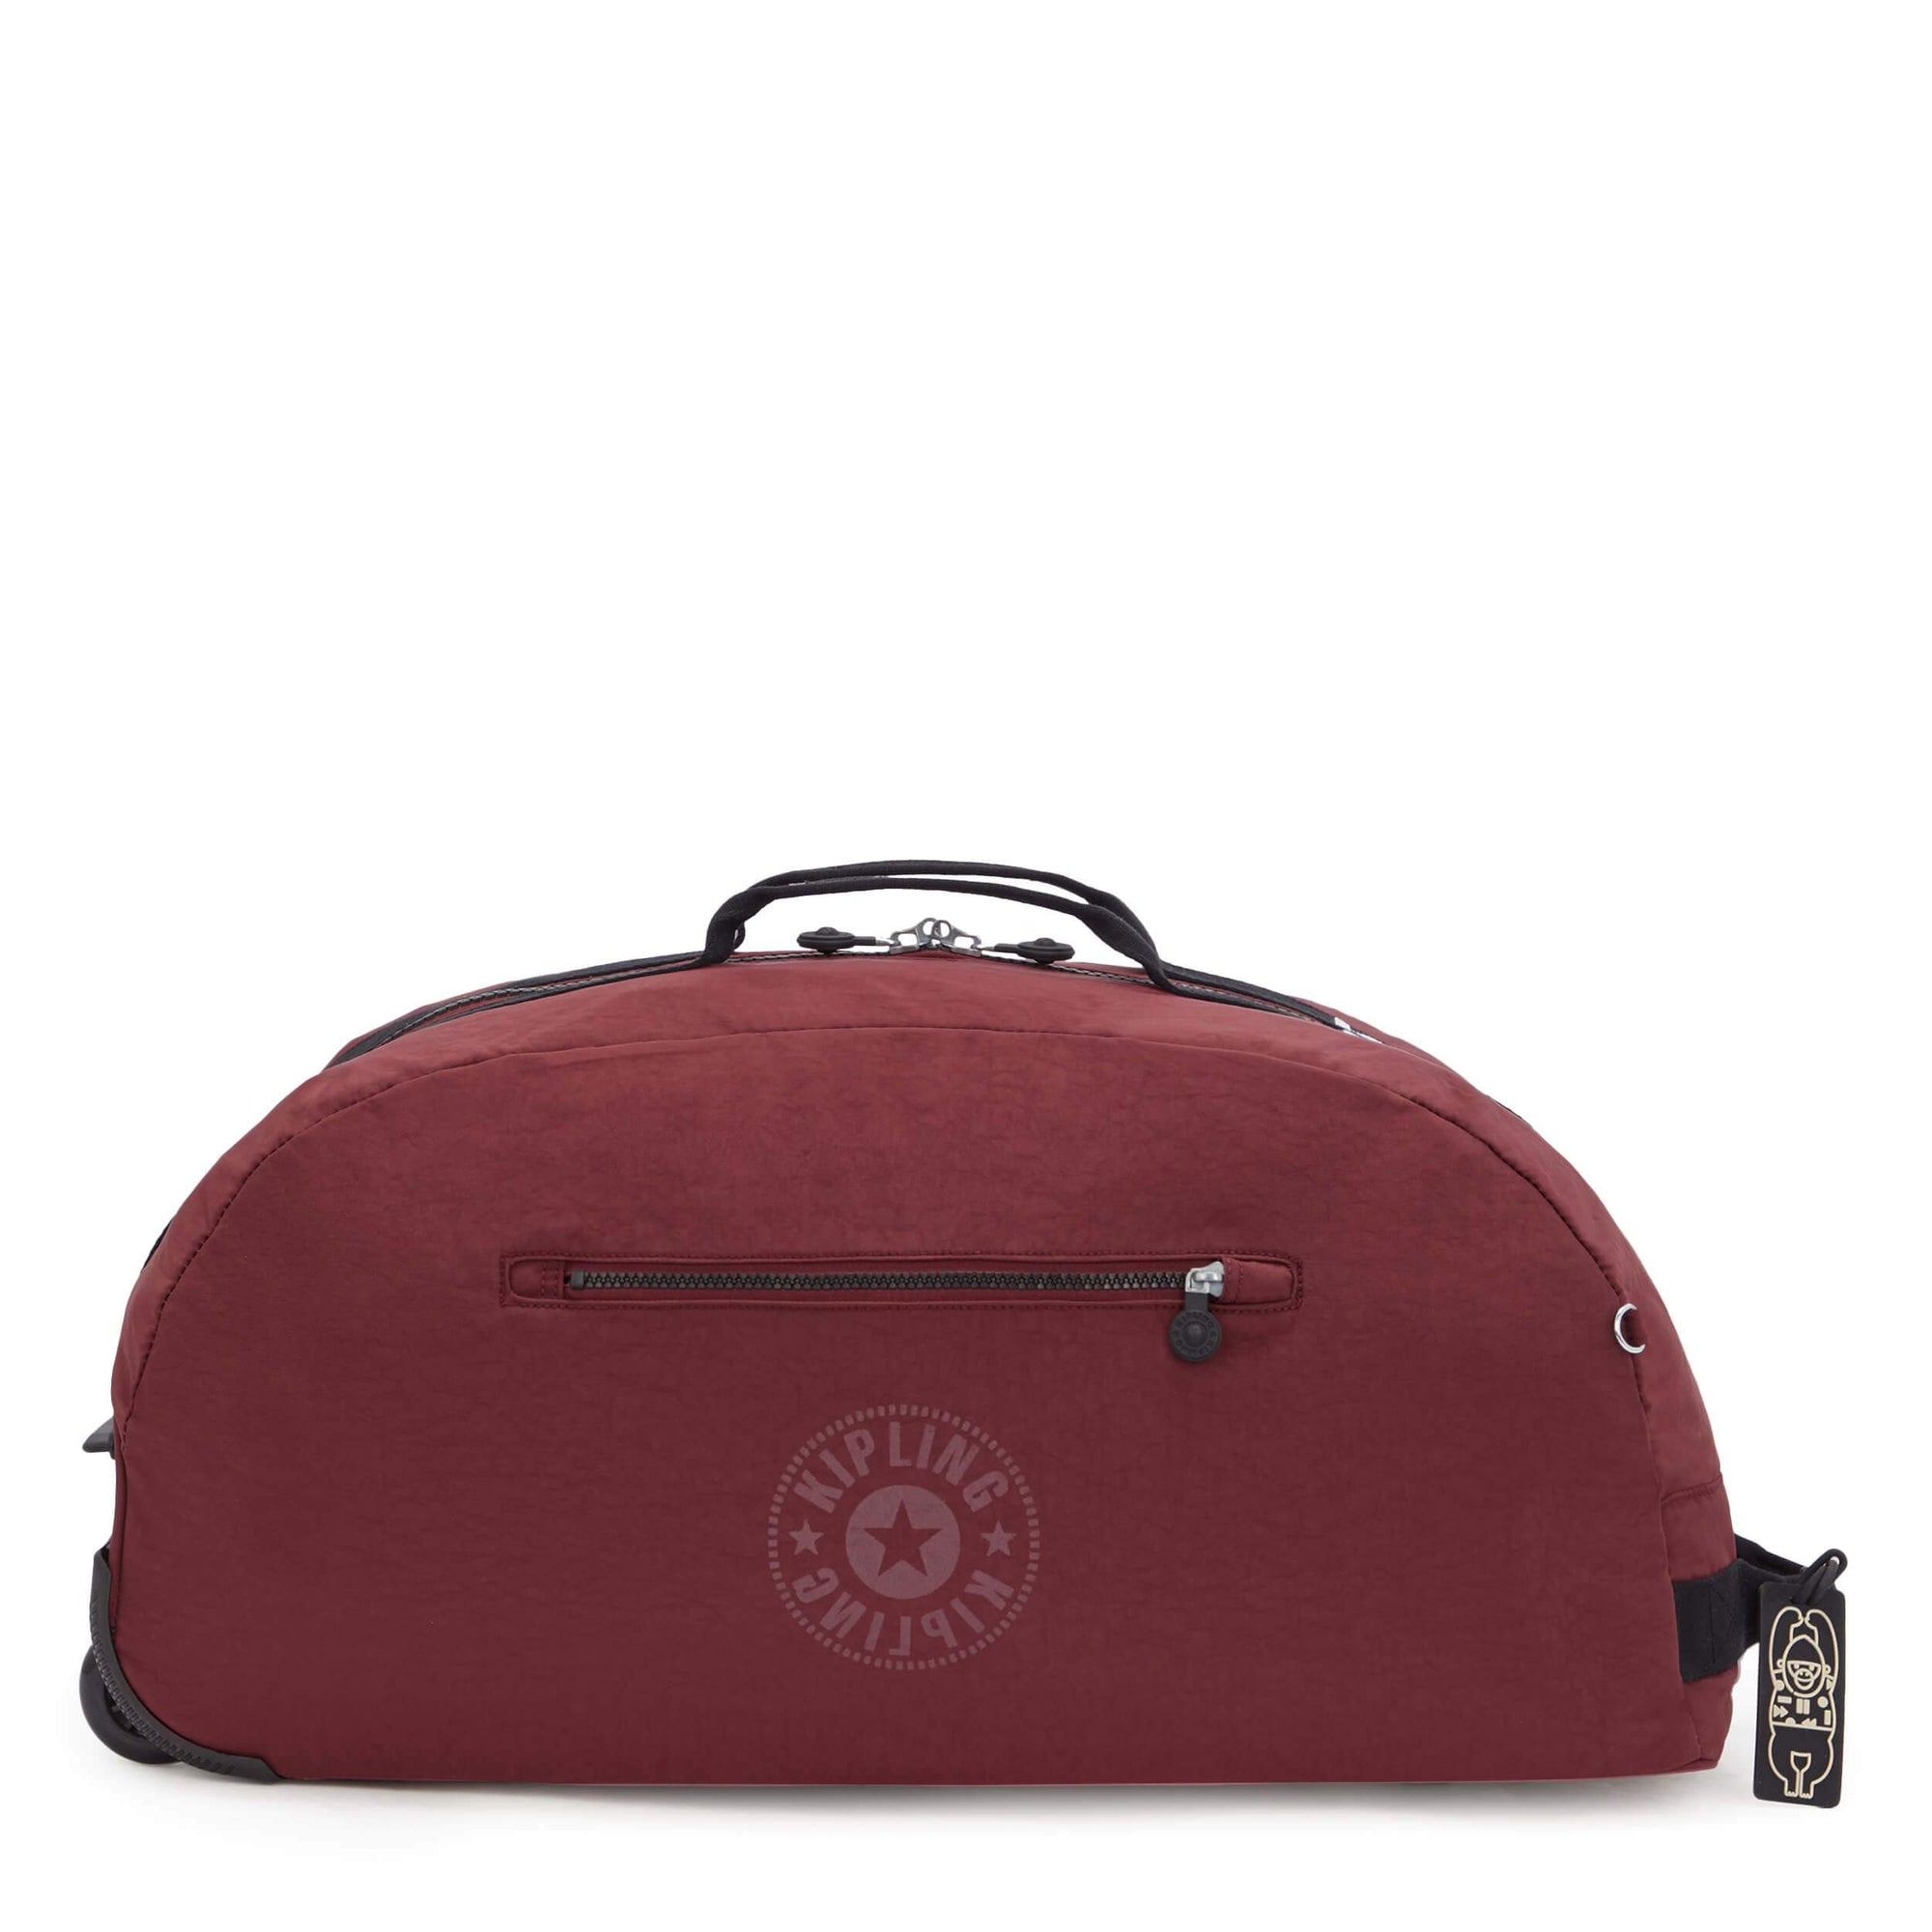 Maleta Kipling Devin on Wheels Maroon Black KI5535T31